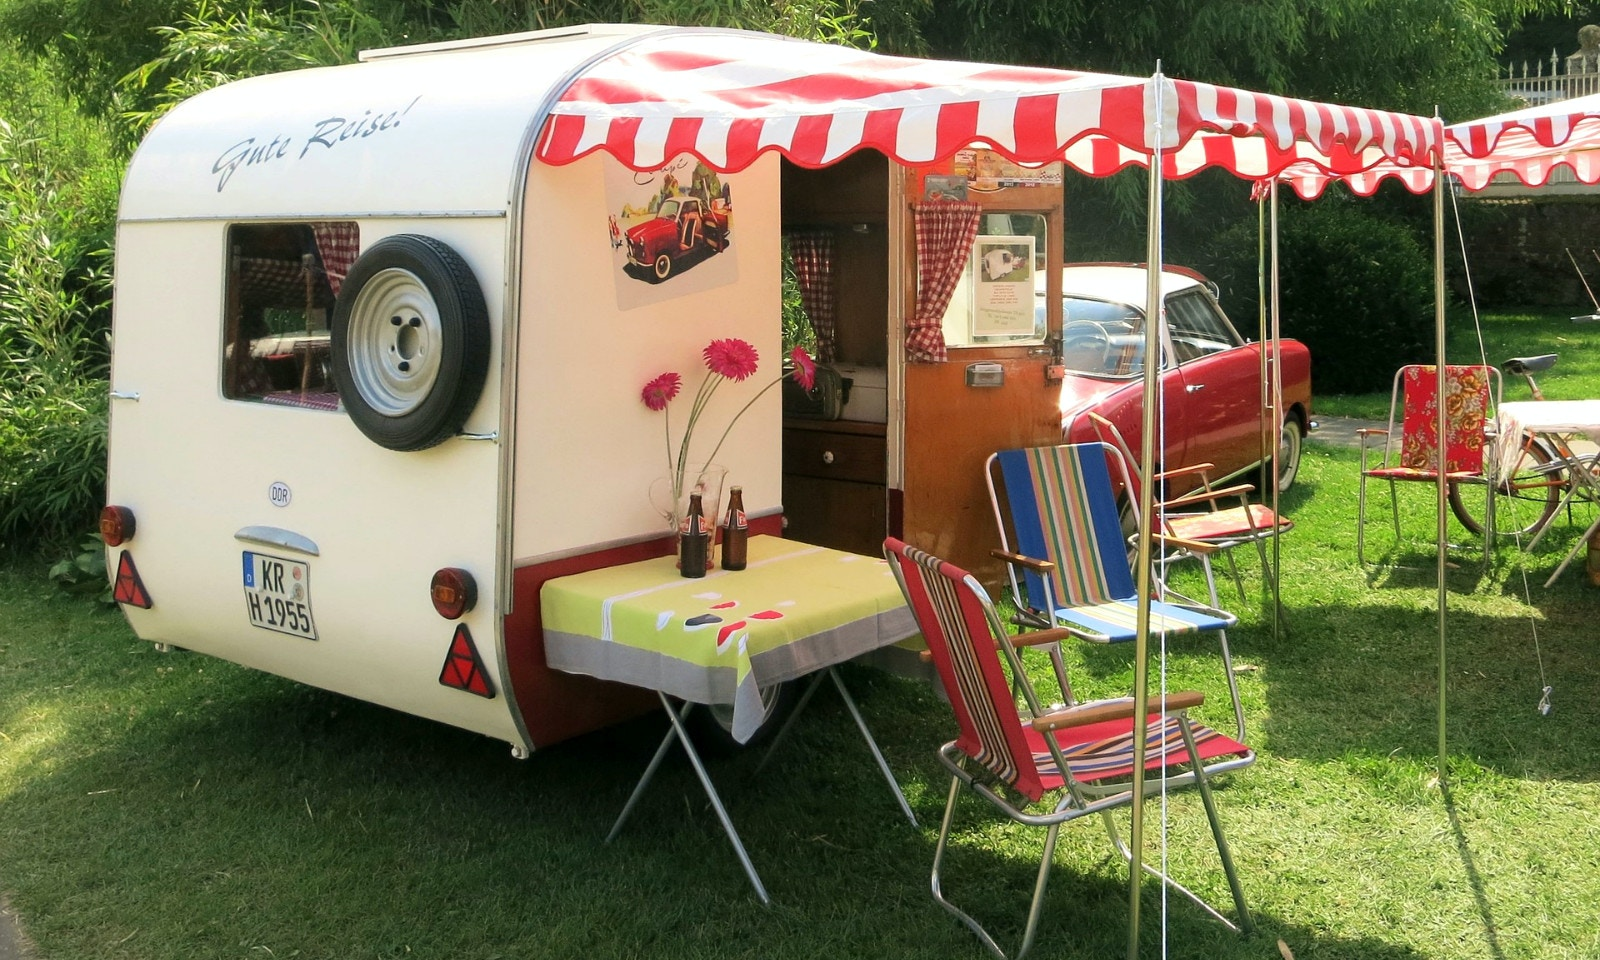 What to Look for When Buying a Used Caravan